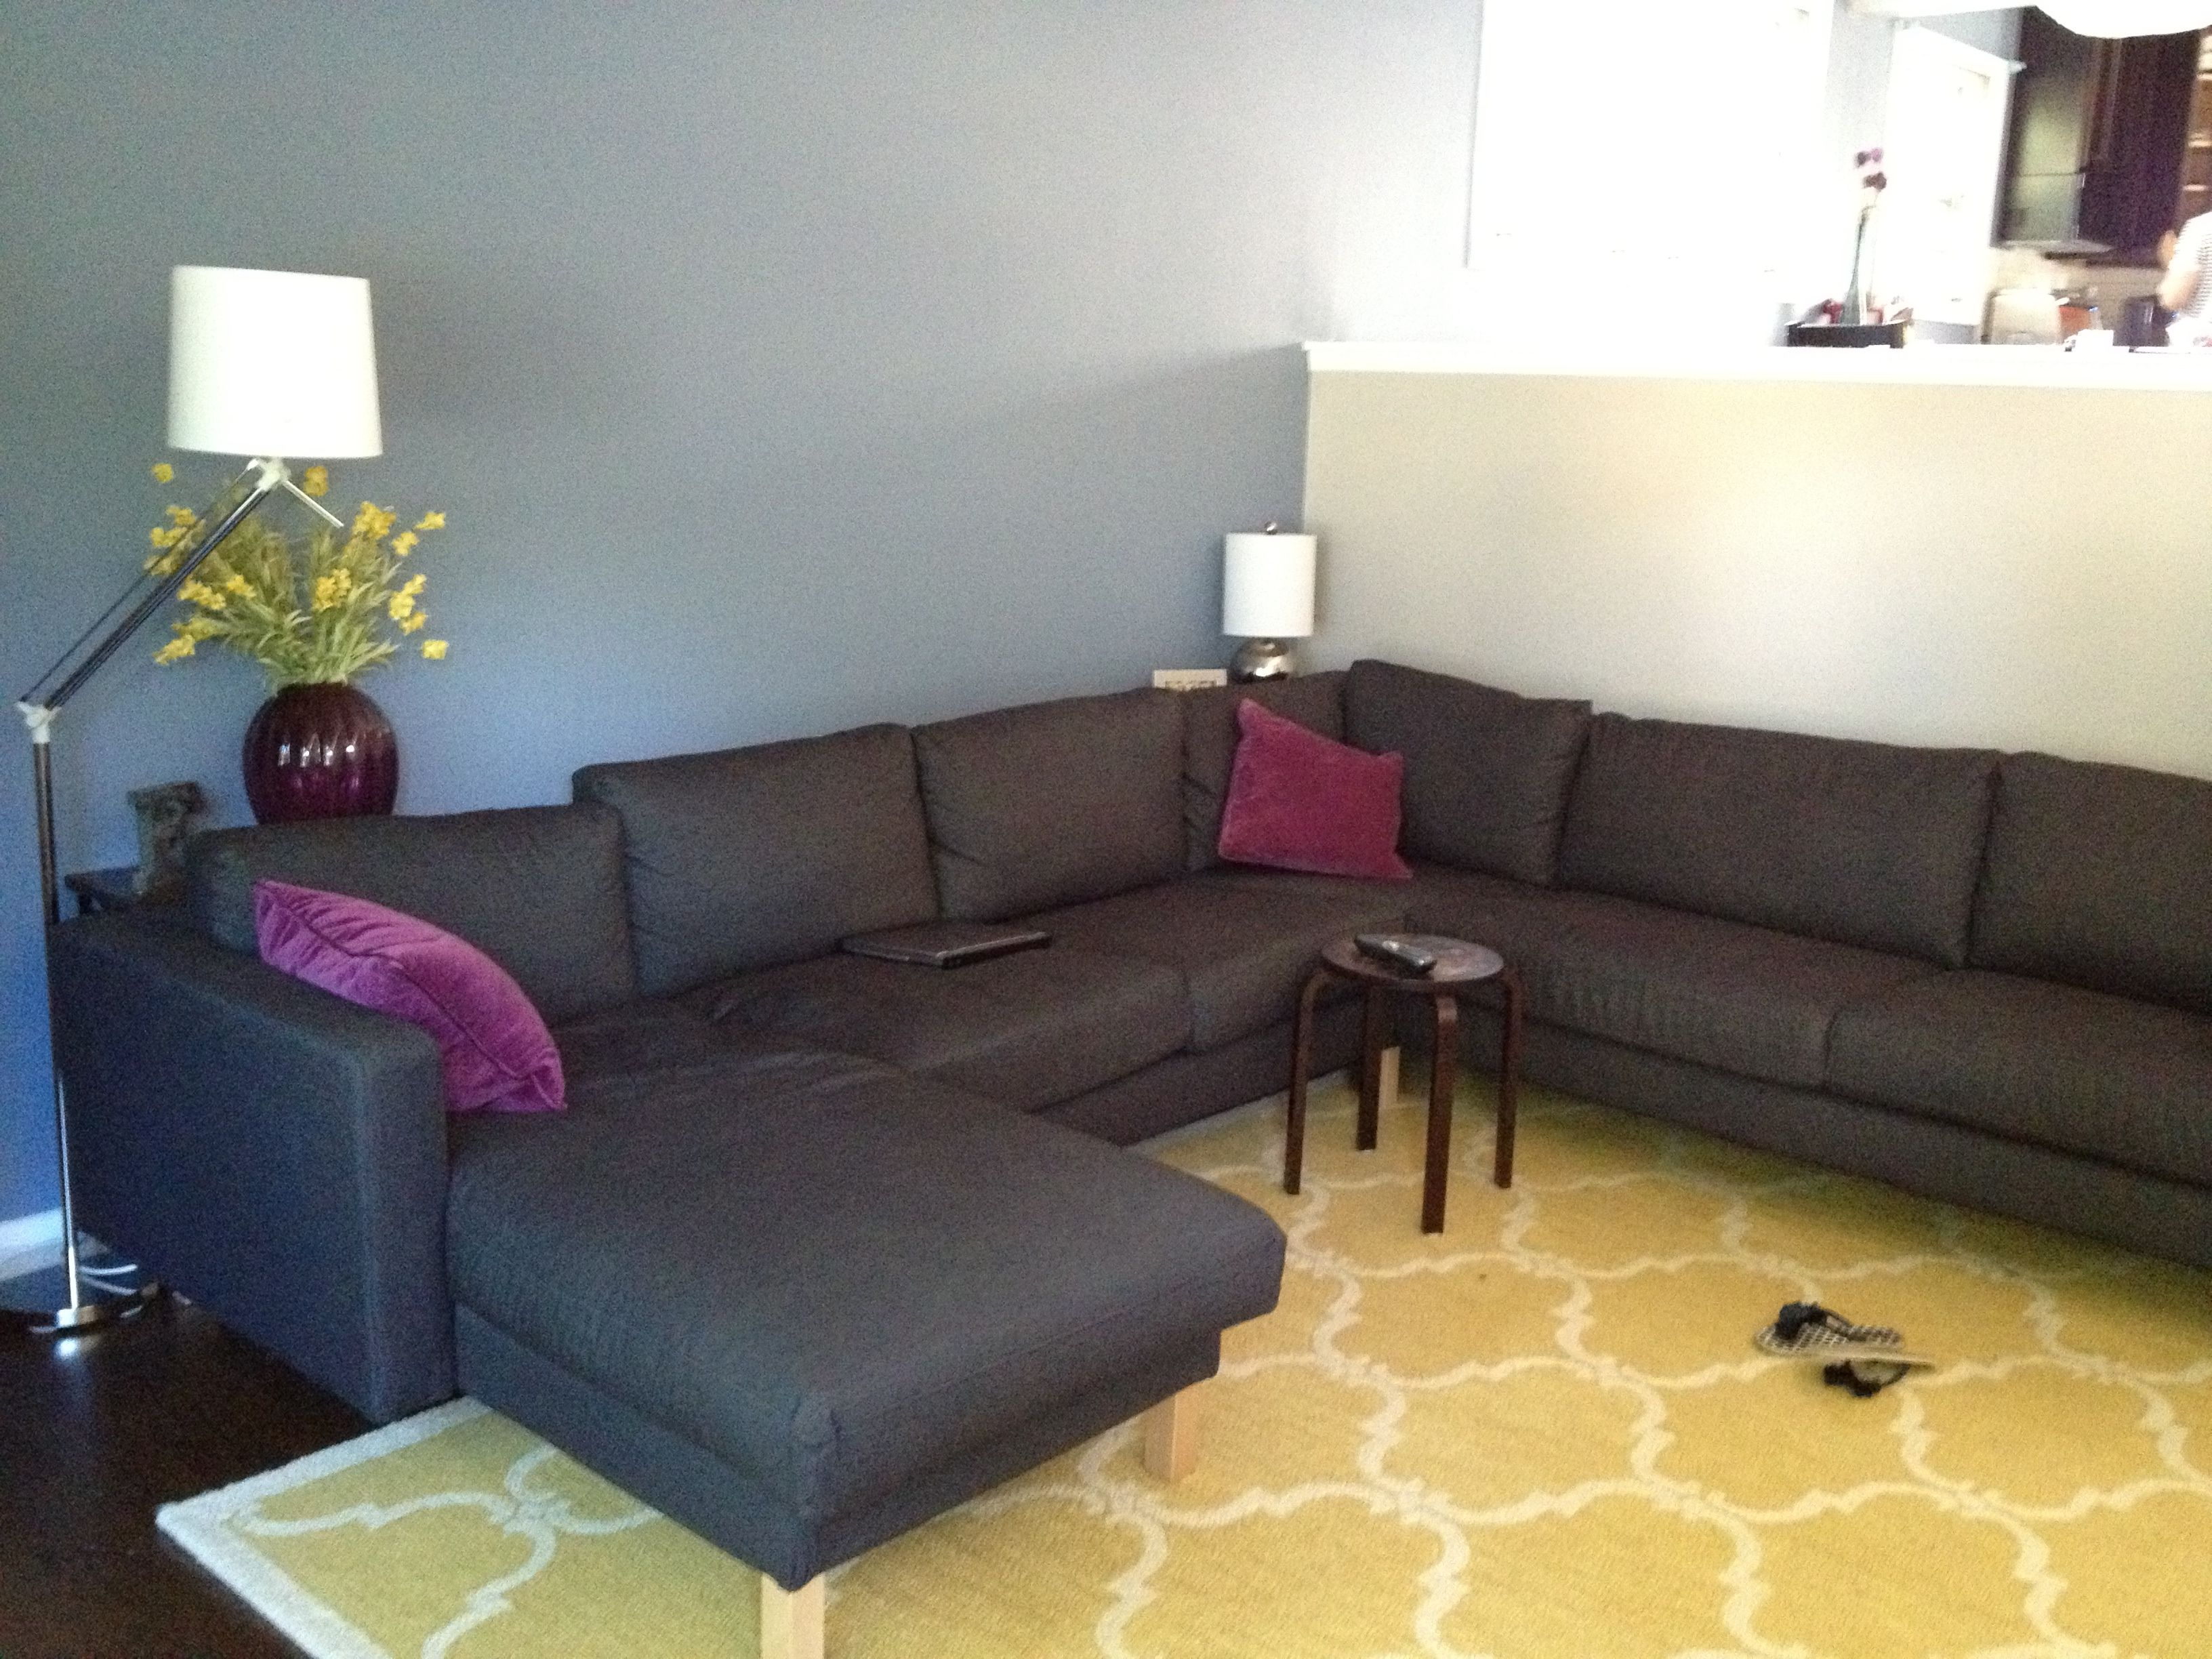 Diy Behind The Couch Distressed Shelf Sofa Floor Lamps Sectional Sofa Sectional